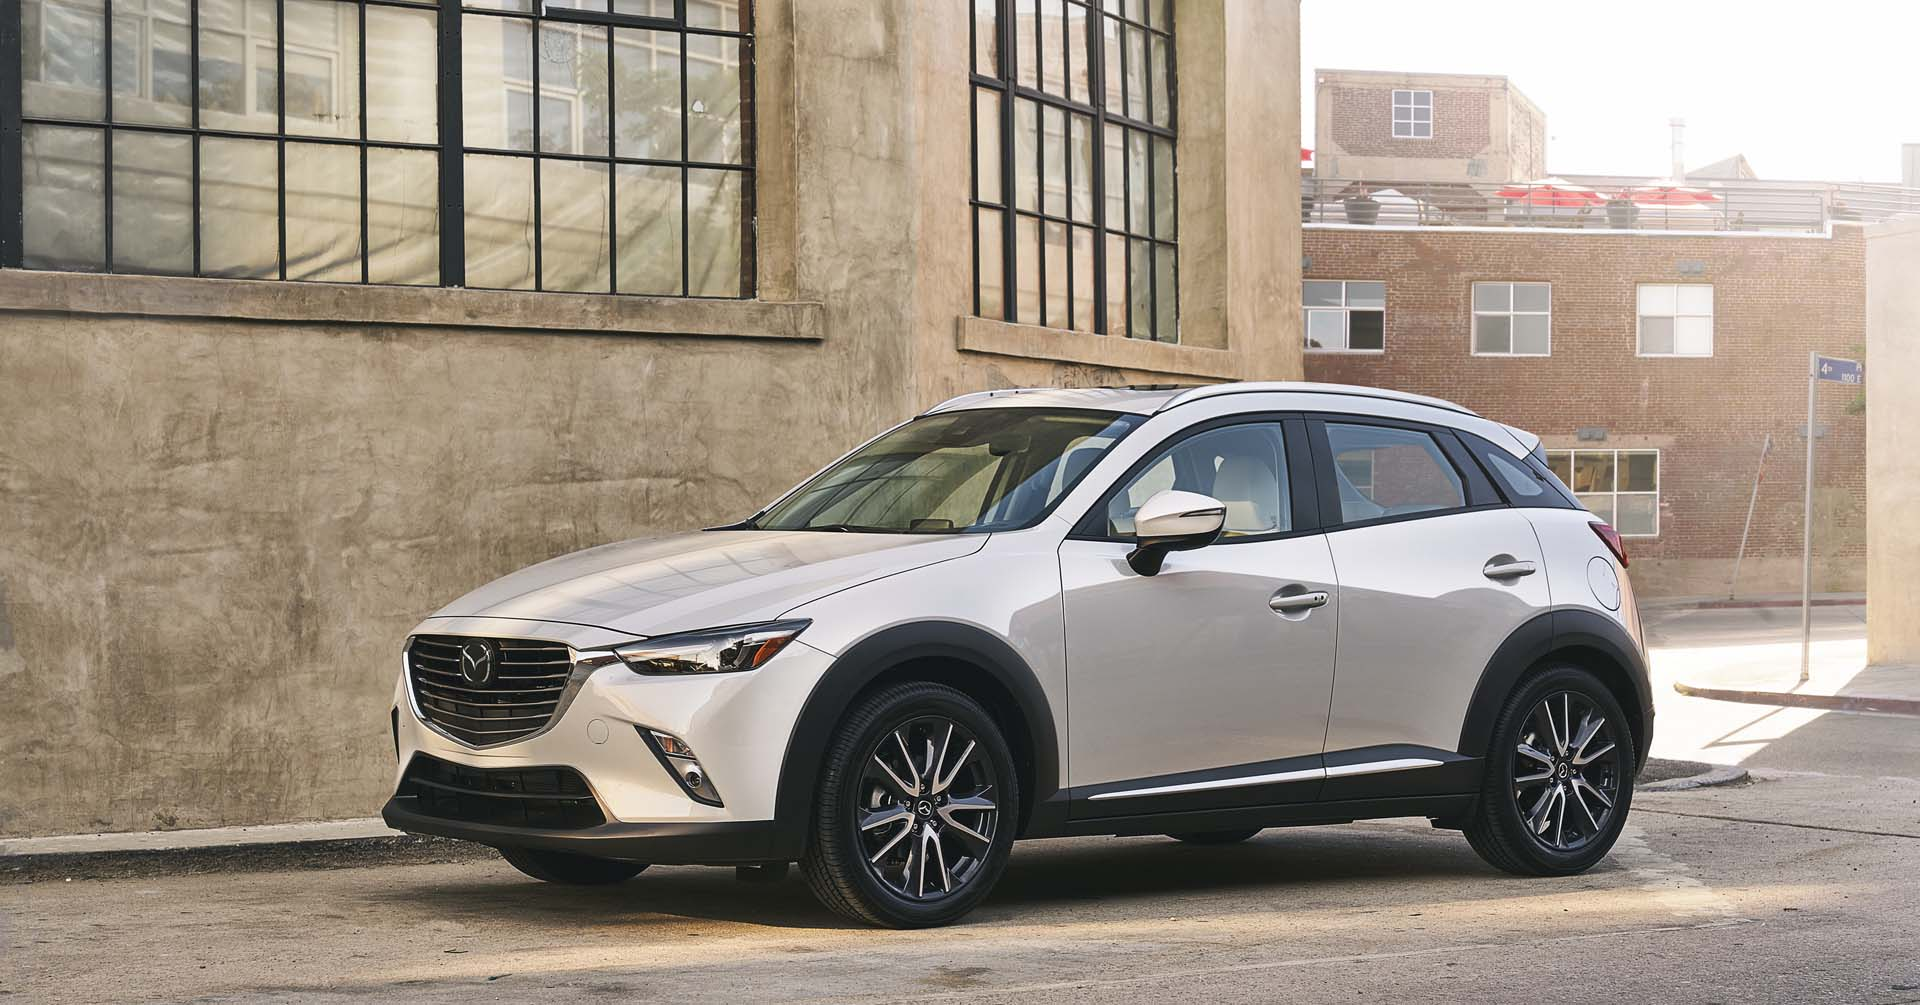 2018 mazda cx 3 quality review the car connection